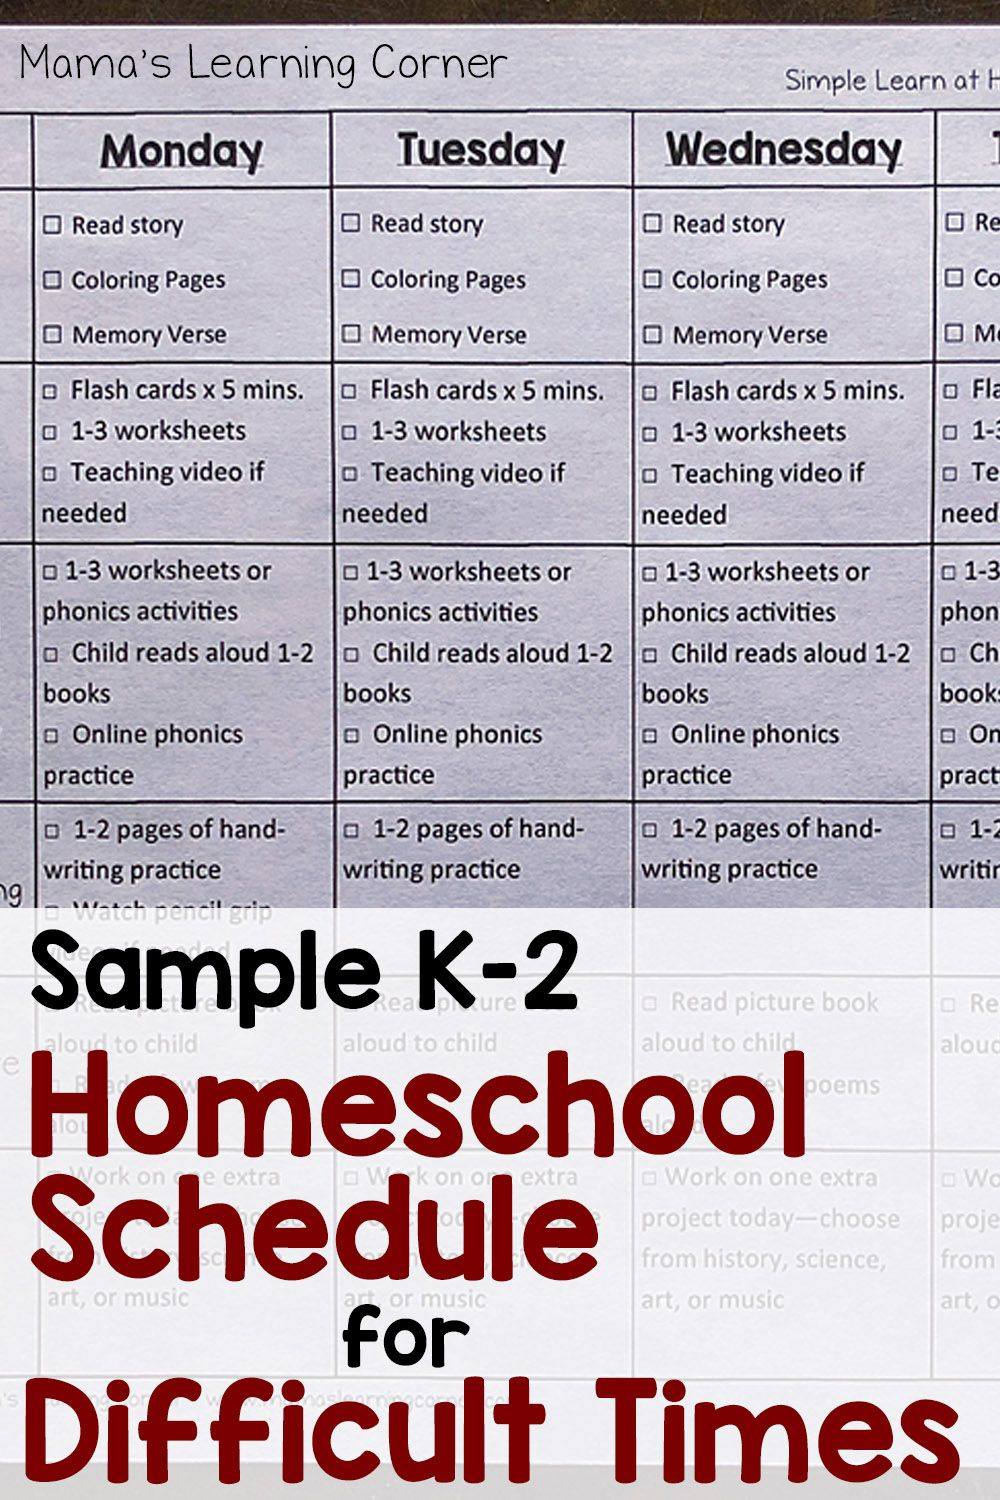 Sample Schedule For Homeschool During Difficult Times Homeschool Preschool Schedule Kindergarten Homeschool Schedule Homeschool Checklist [ 1500 x 1000 Pixel ]